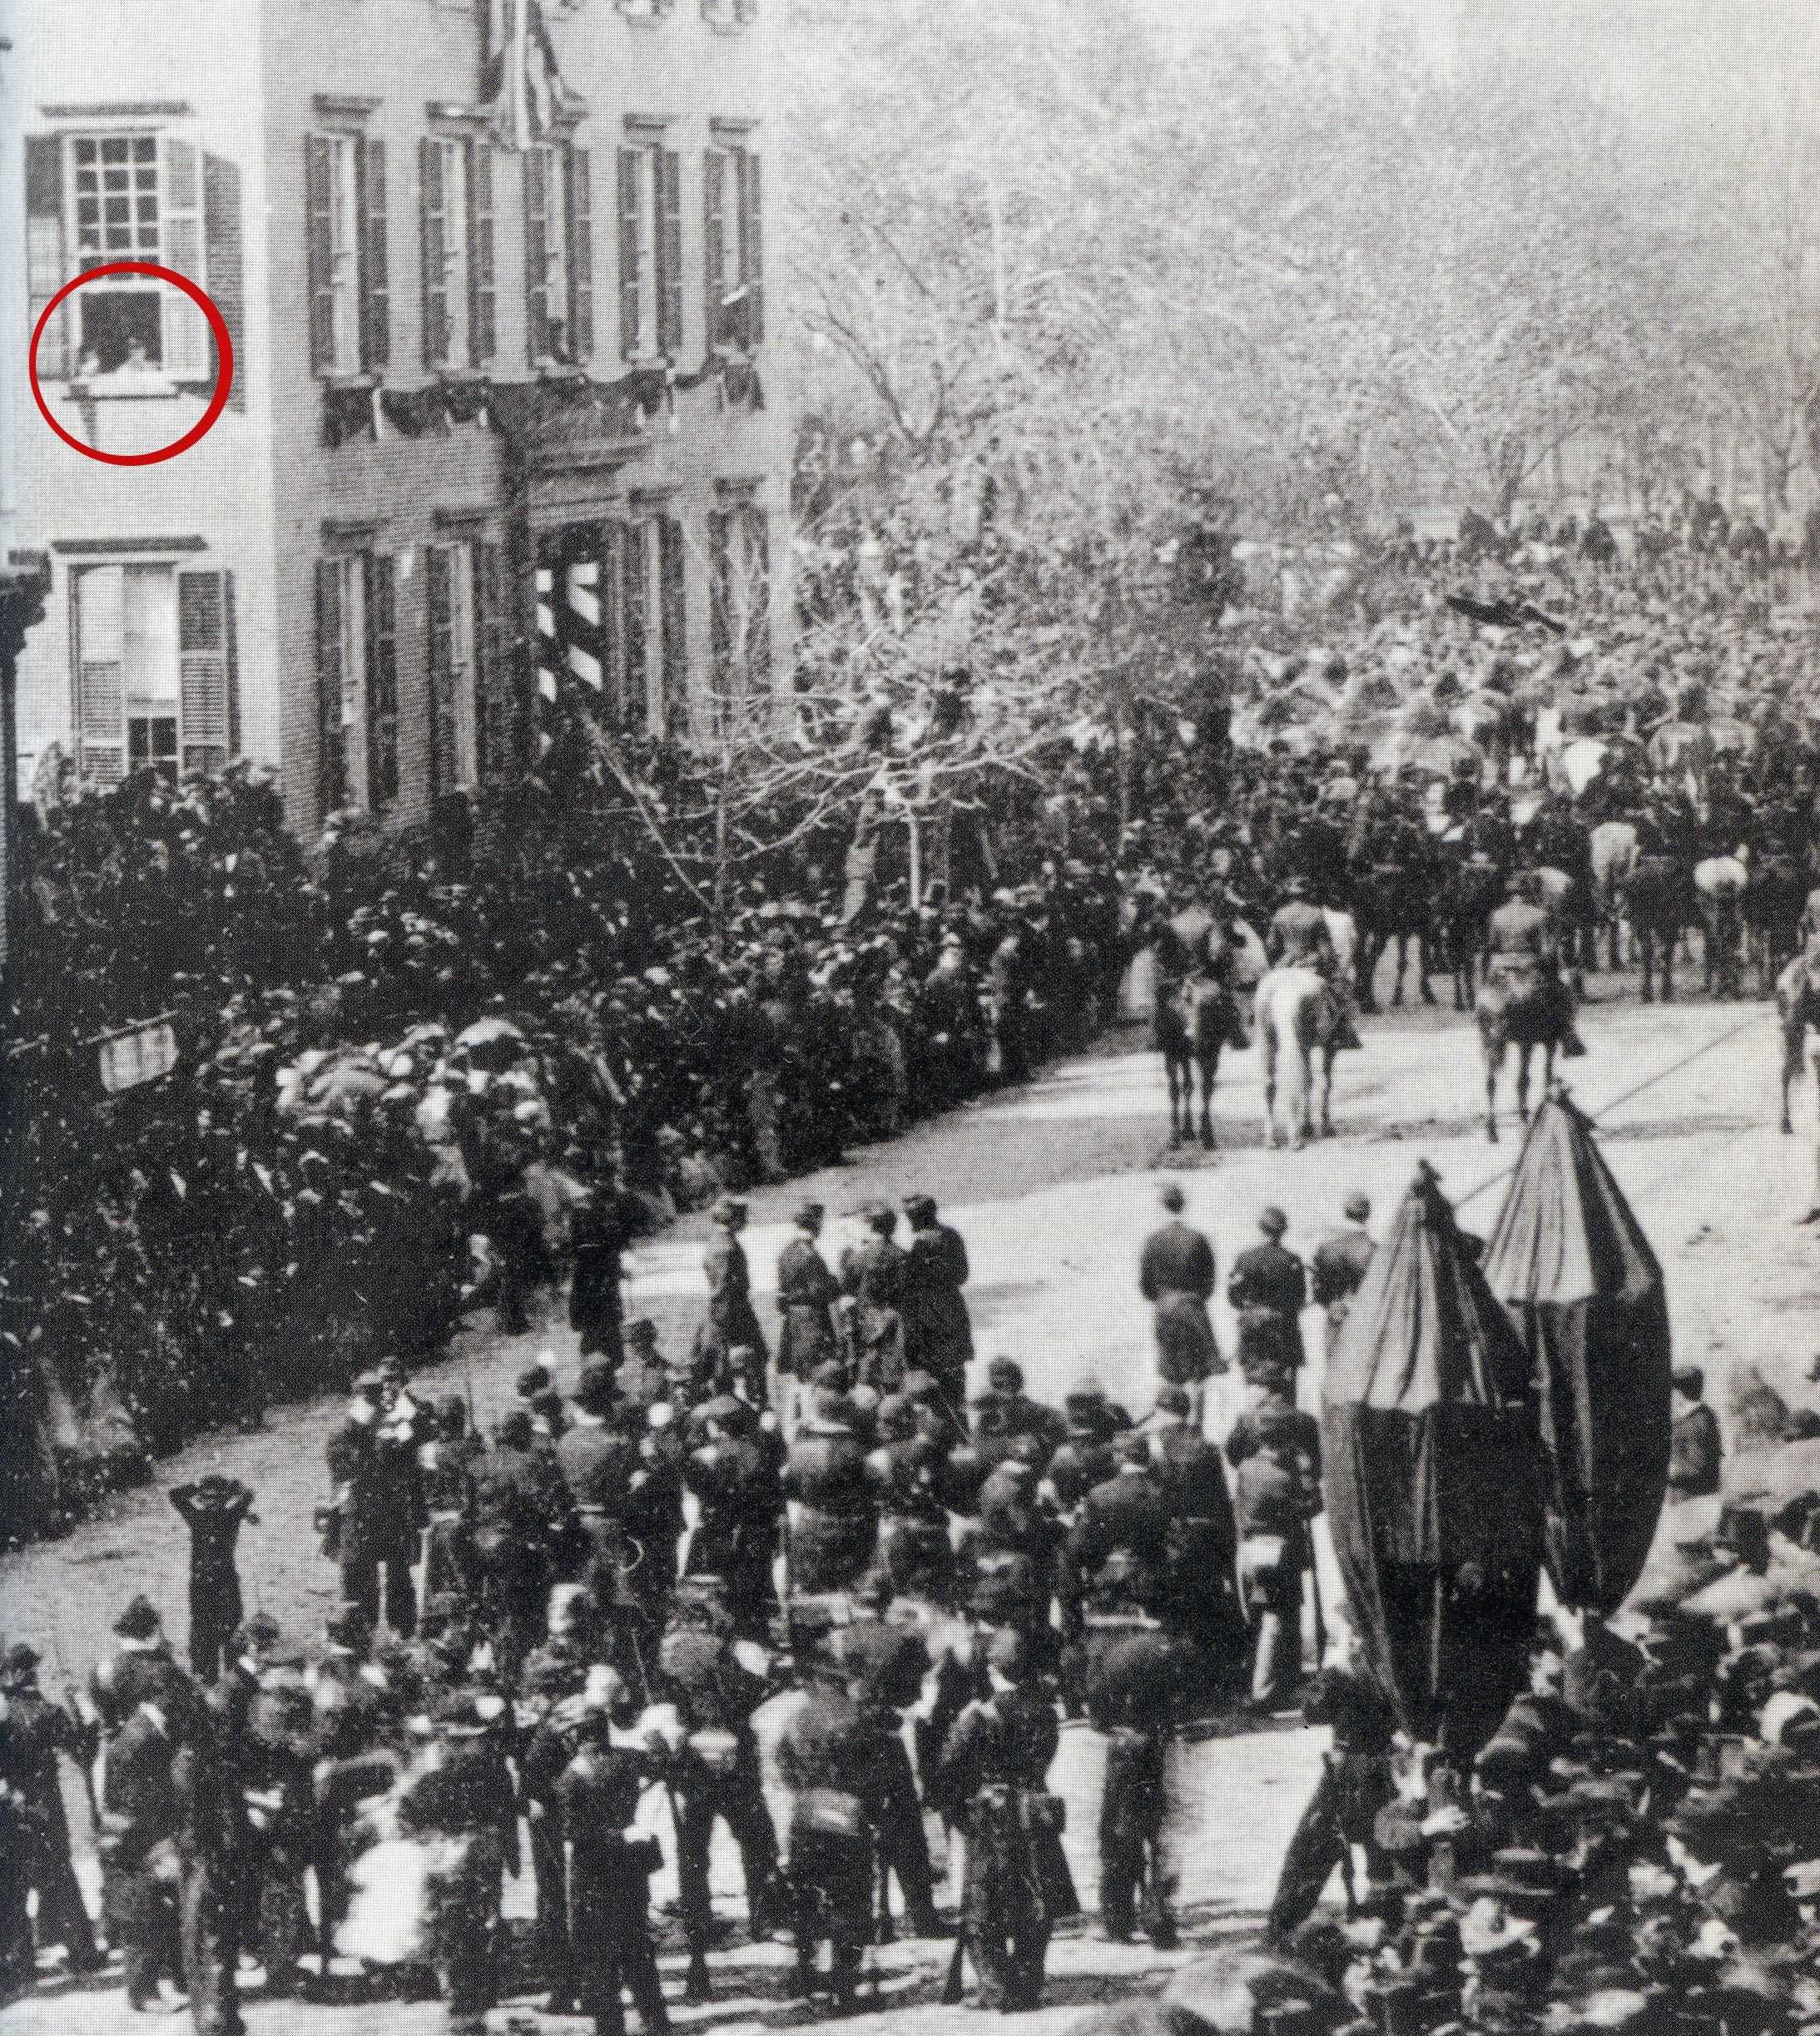 Abraham Lincoln S Funeral Procession In New York City